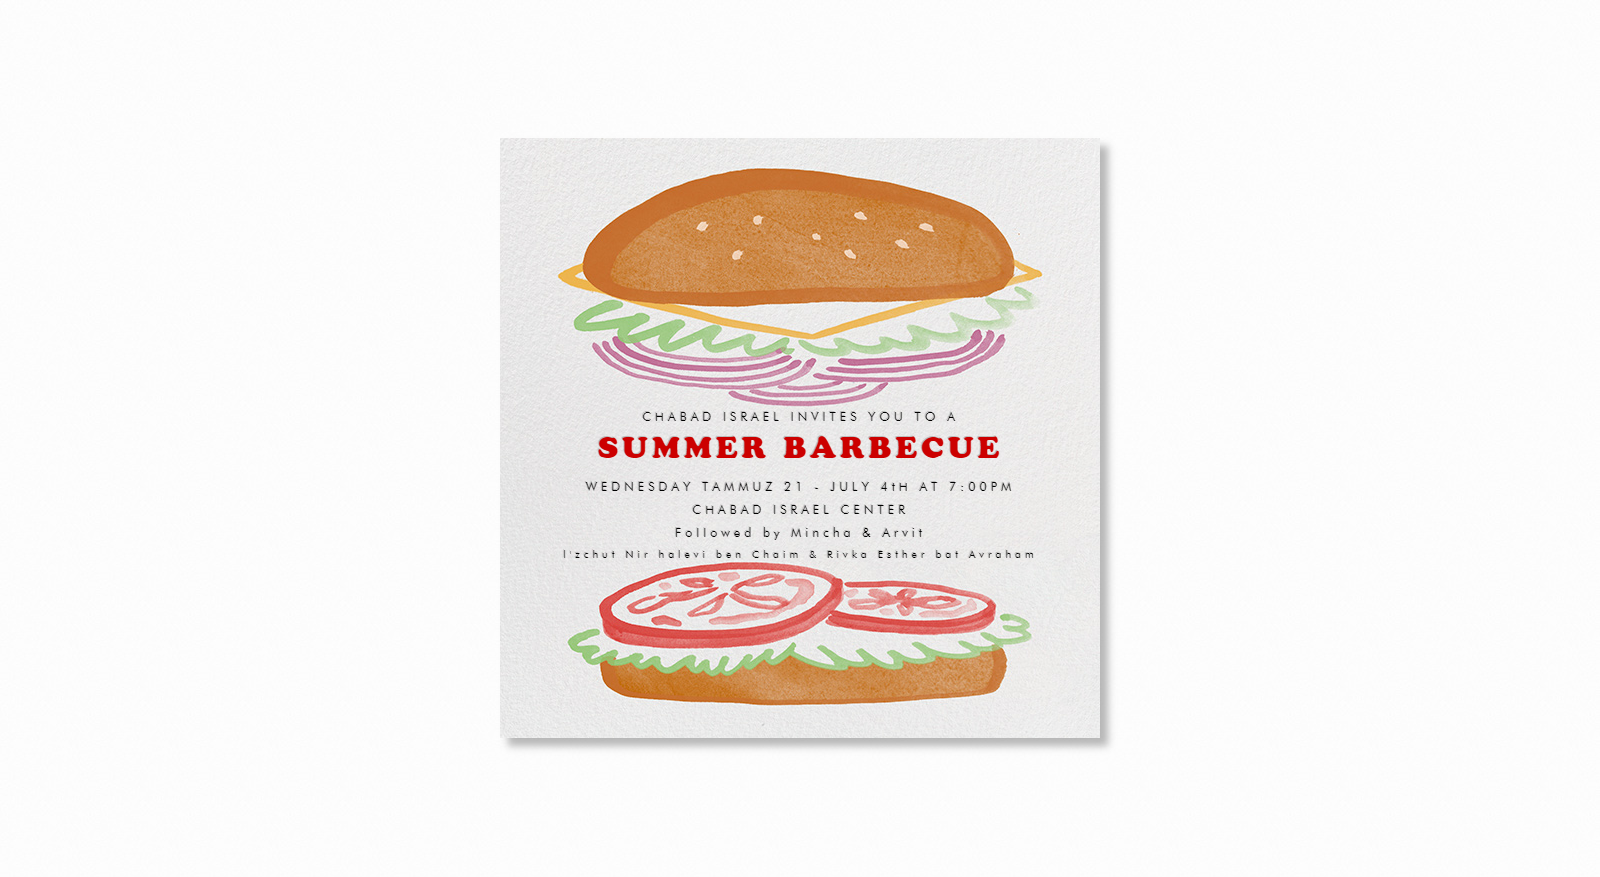 Summer bbq 5778.png